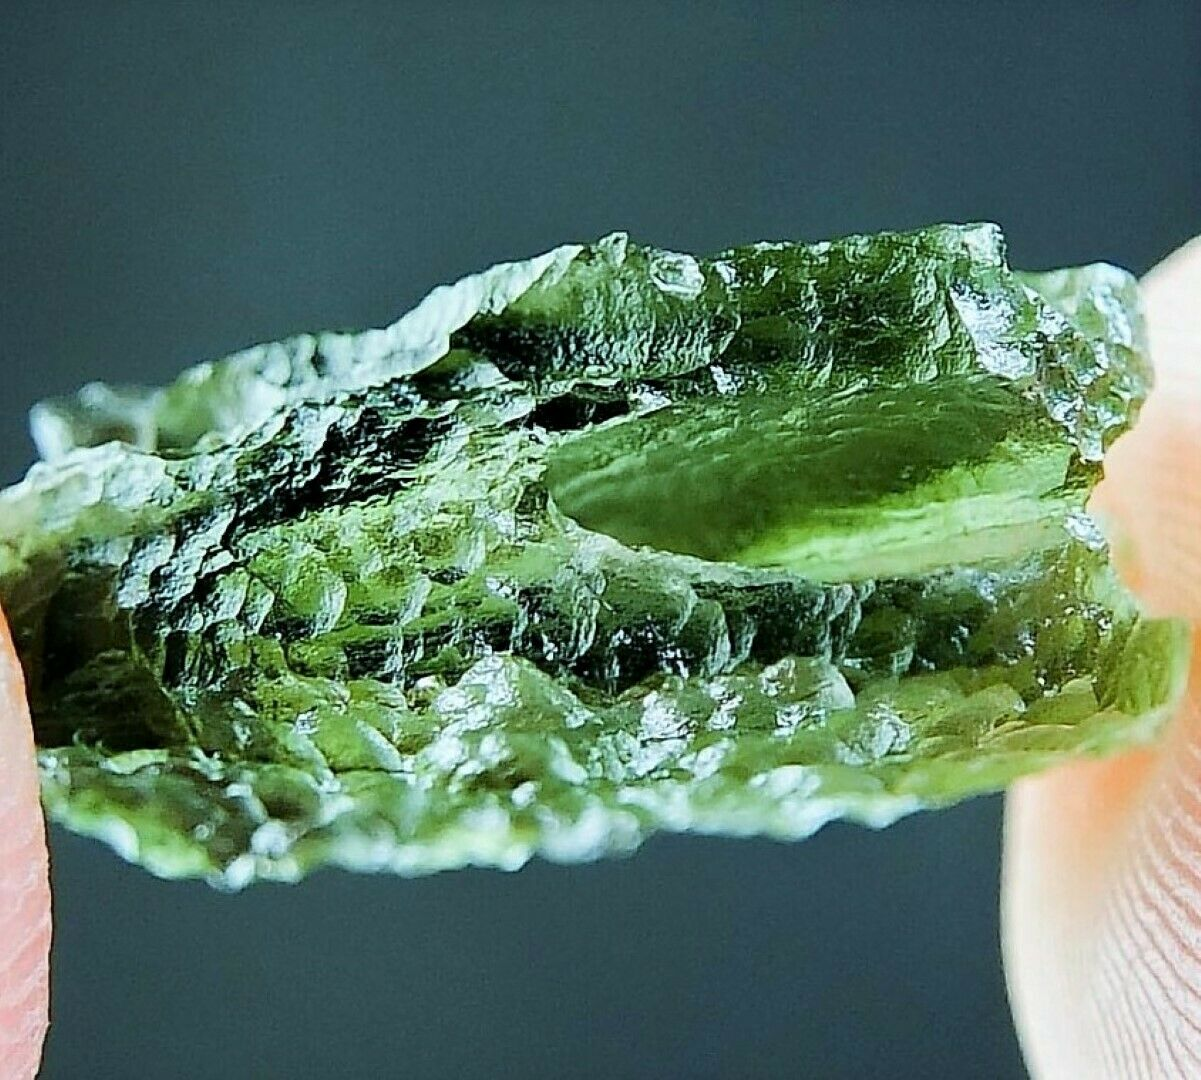 What Crystals Are Similar To Moldavite